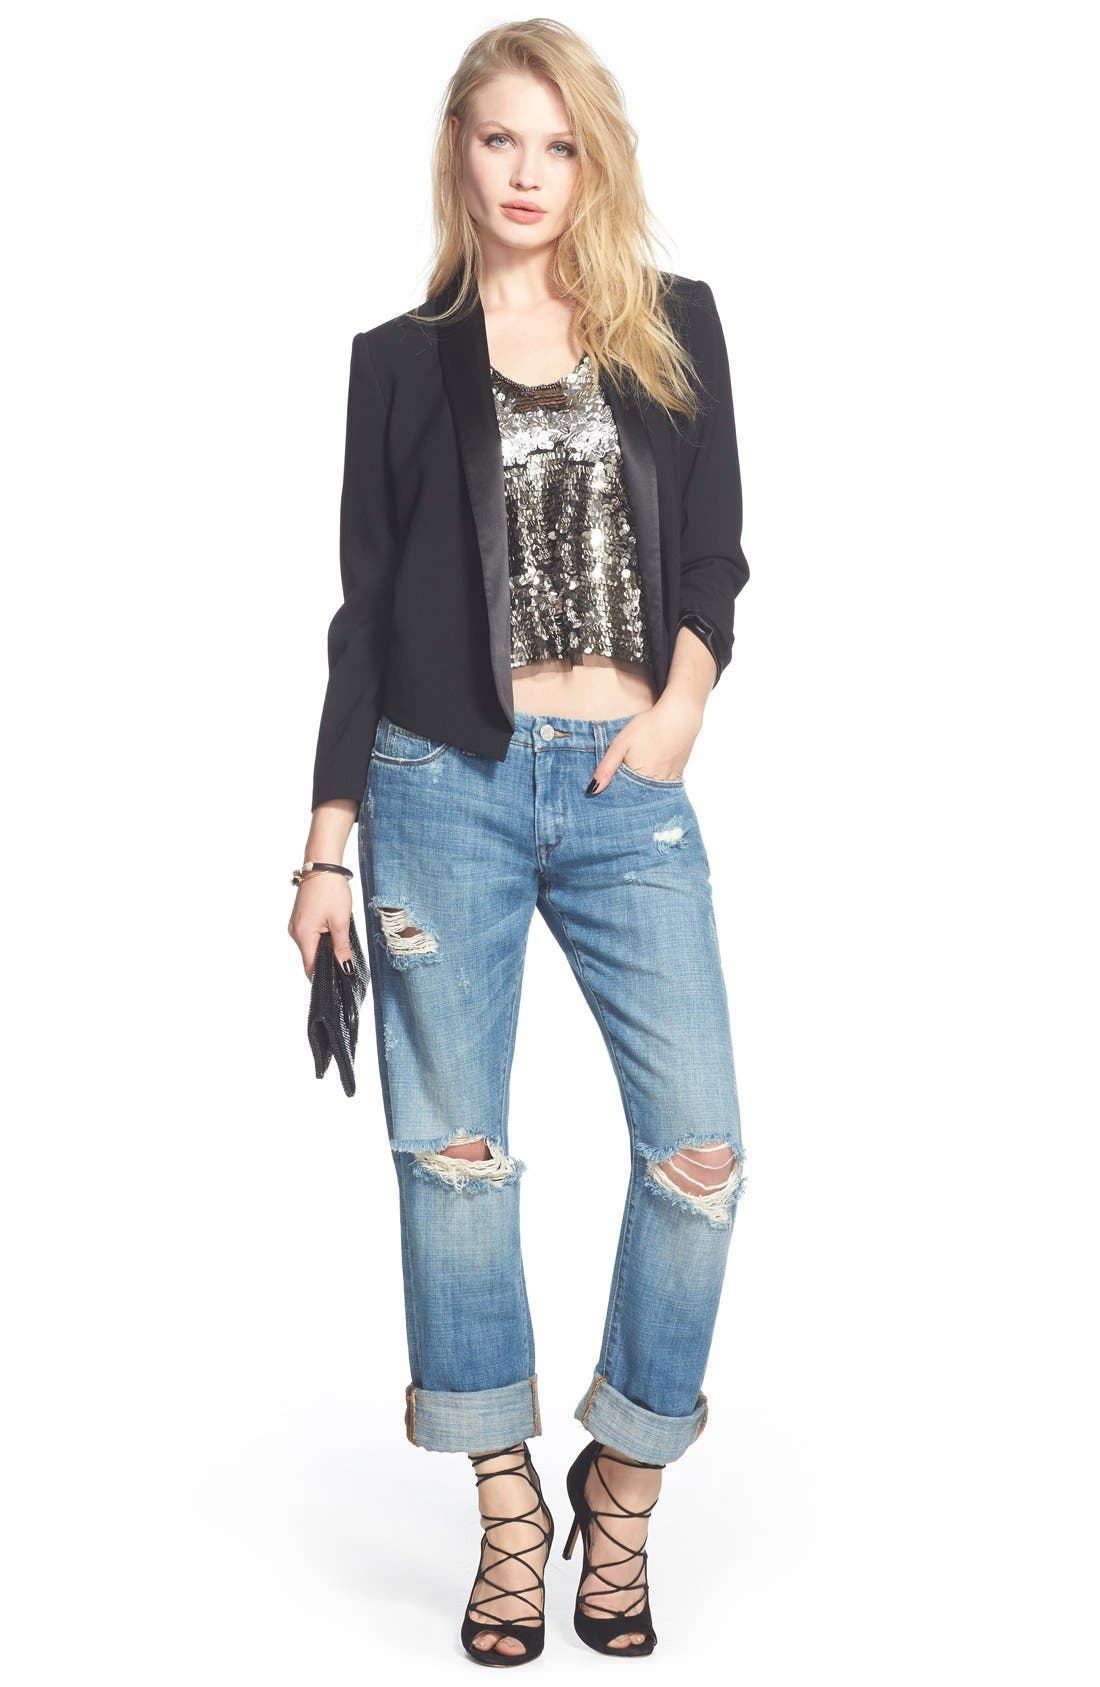 'Meant to Be' High Rise Distressed Boyfriend Jeans,                             Alternate thumbnail 2, color,                             Tomboy